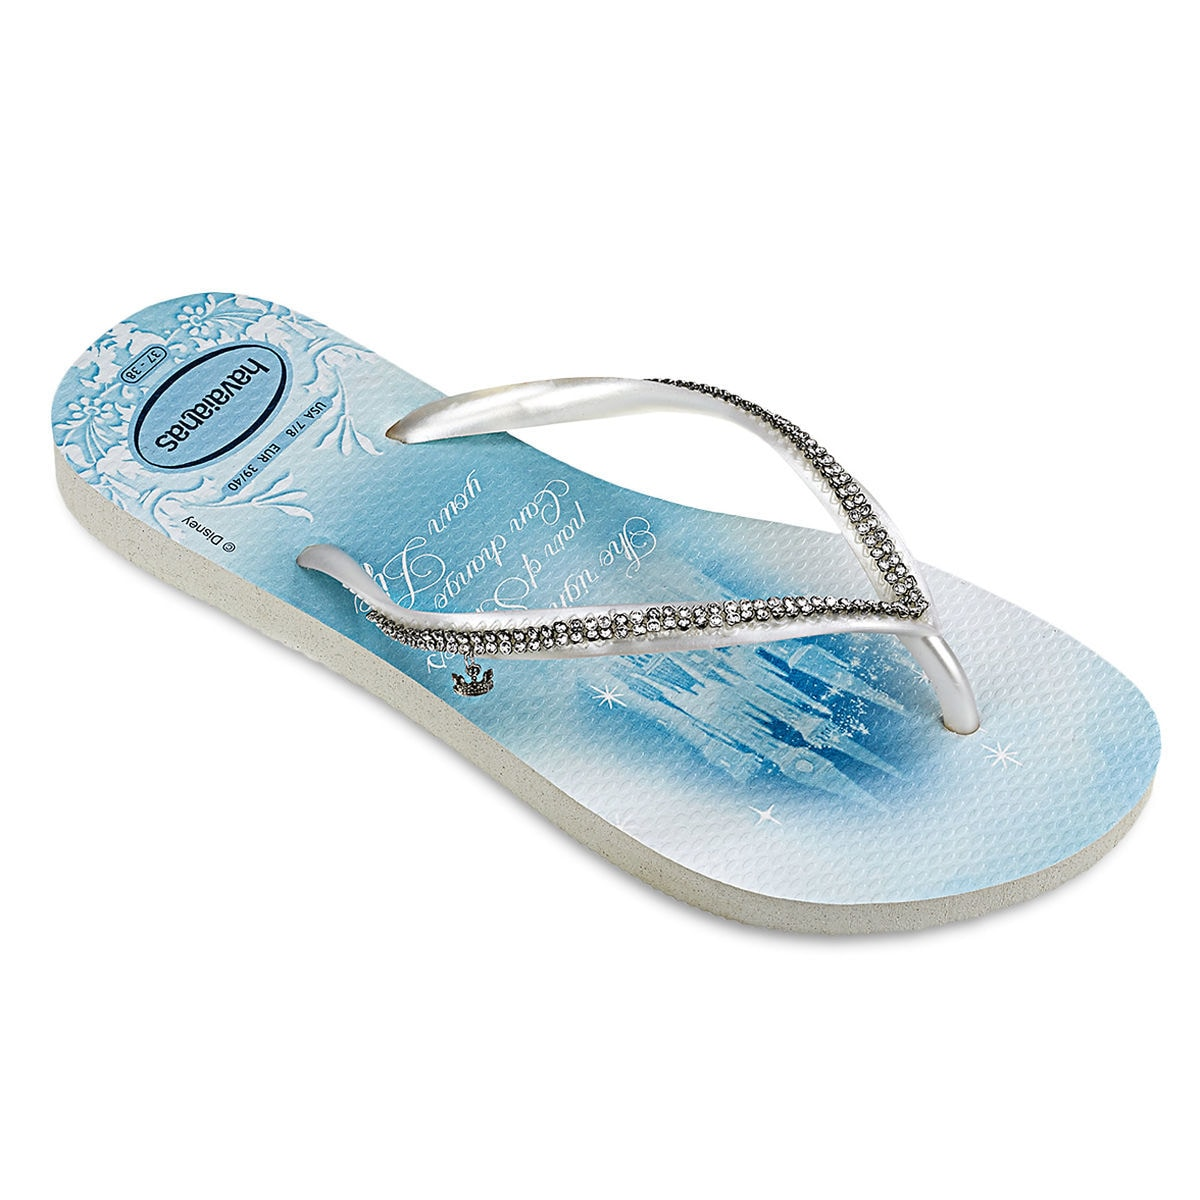 c60967888d7e90 Product Image of Cinderella Bridal Flip Flops for Women by Havaianas   1